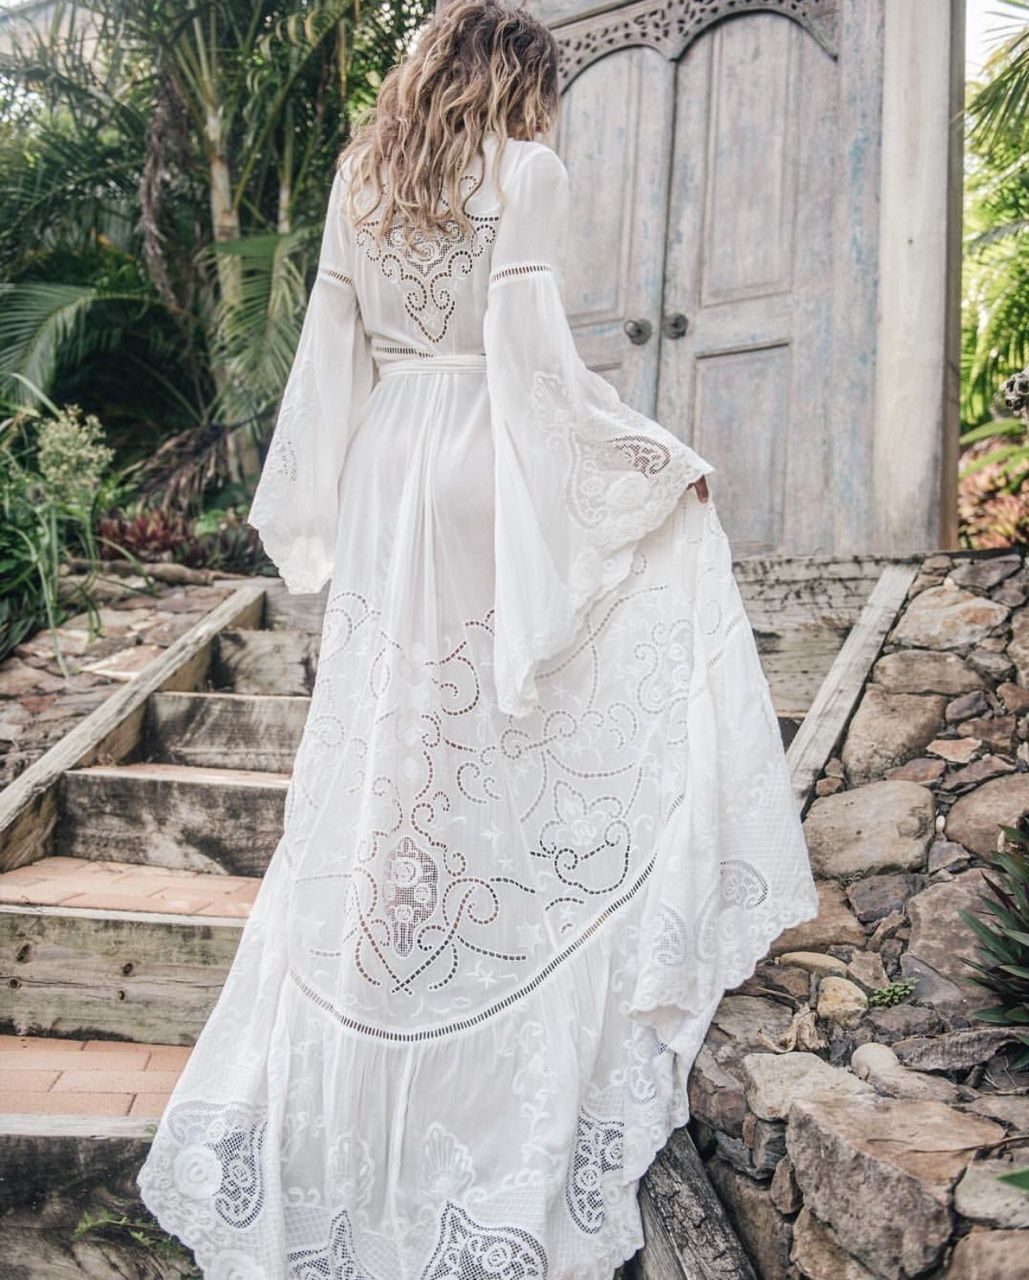 Boho Chic Style Wedding Gown | happily ever after | Pinterest ...